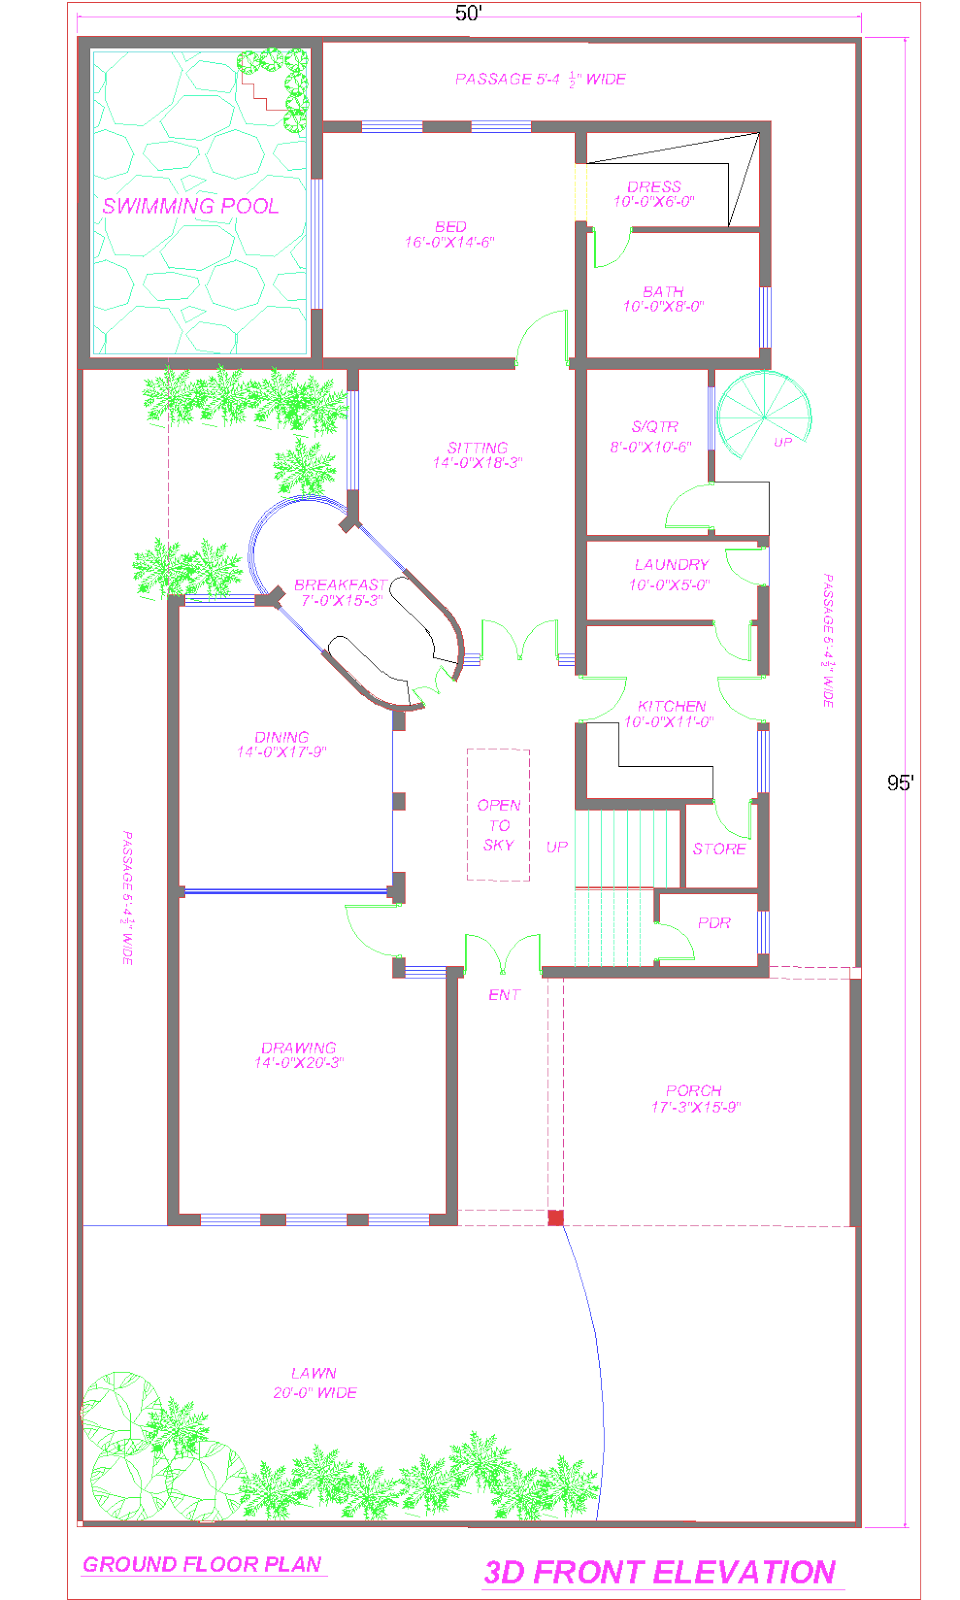 clip freeuse download dreamhouse drawing swimming pool #95936802